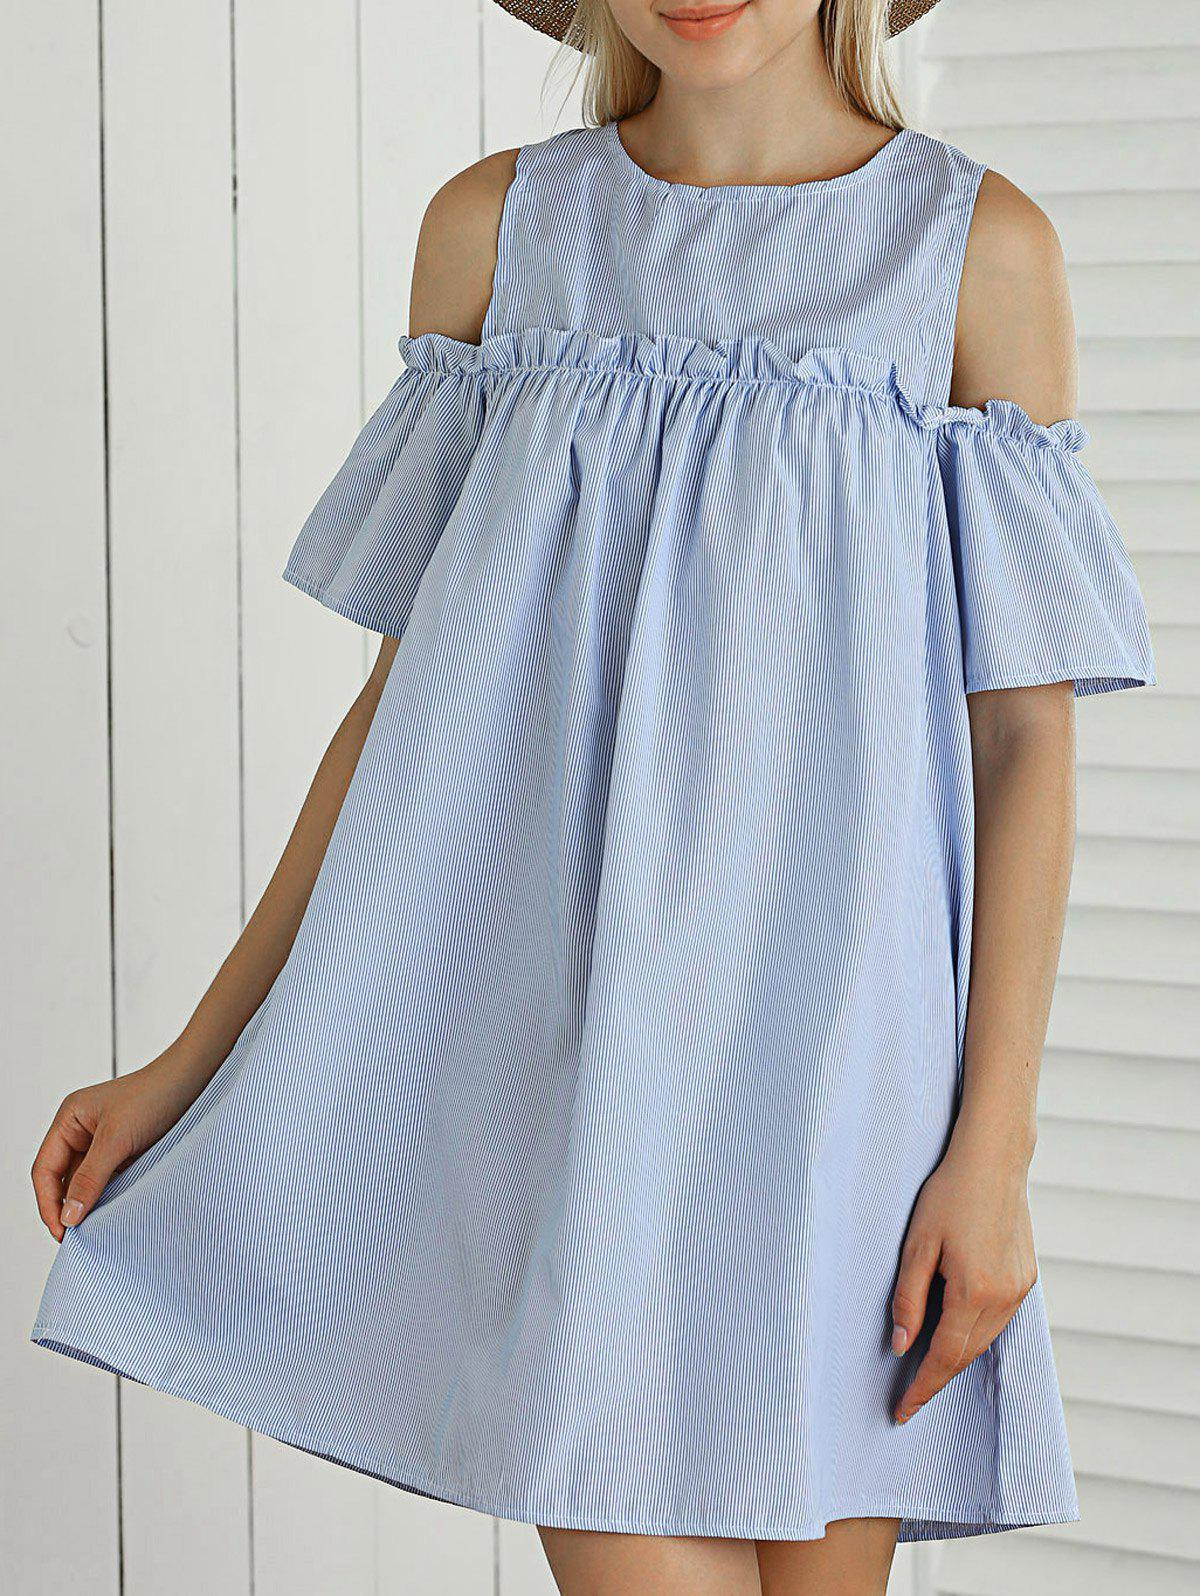 Trendy Striped Cut Out Ruffled Casual Dress For Summer